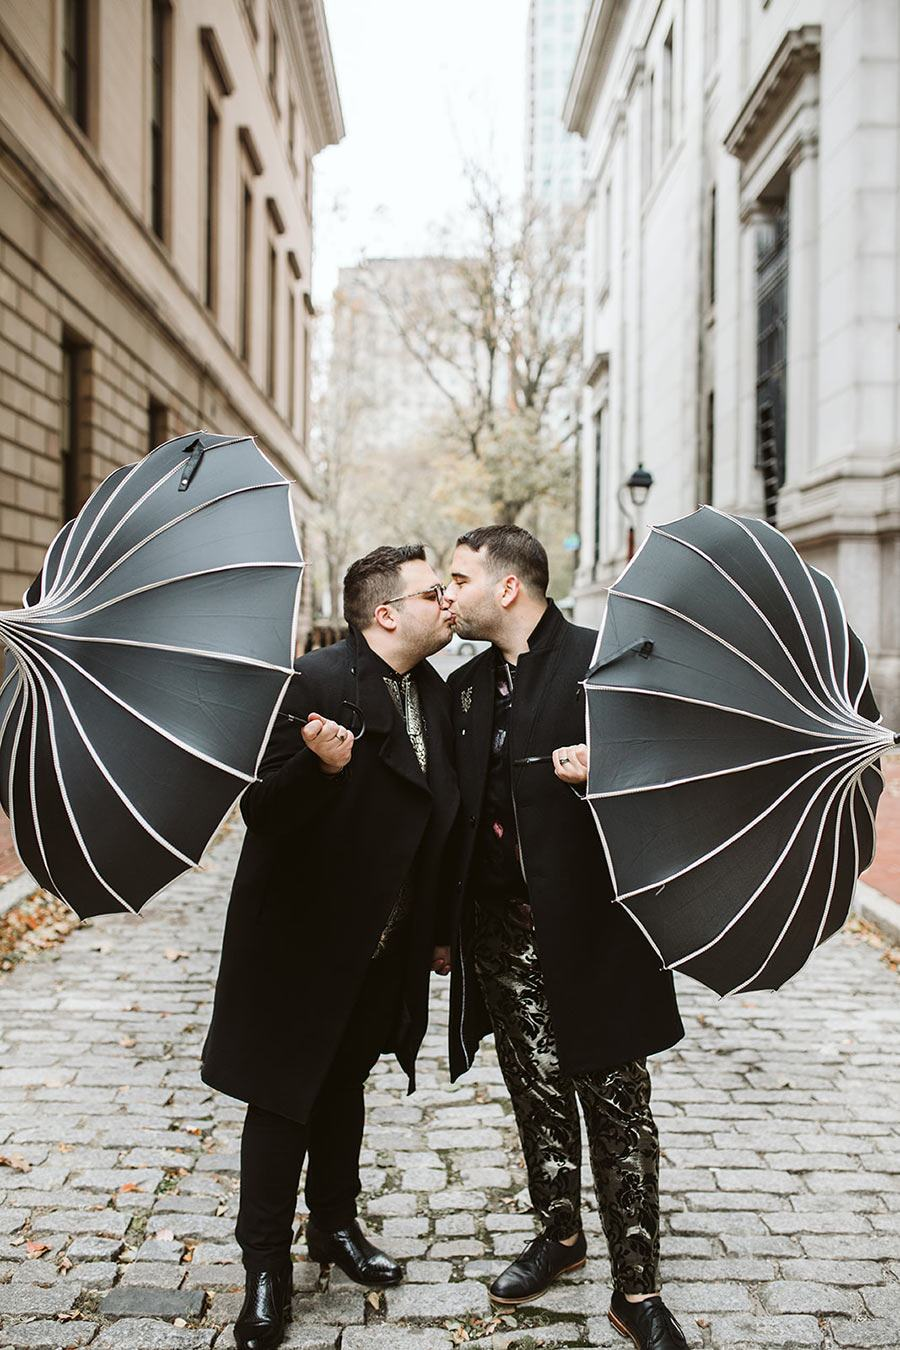 engagements photos with umbrellas